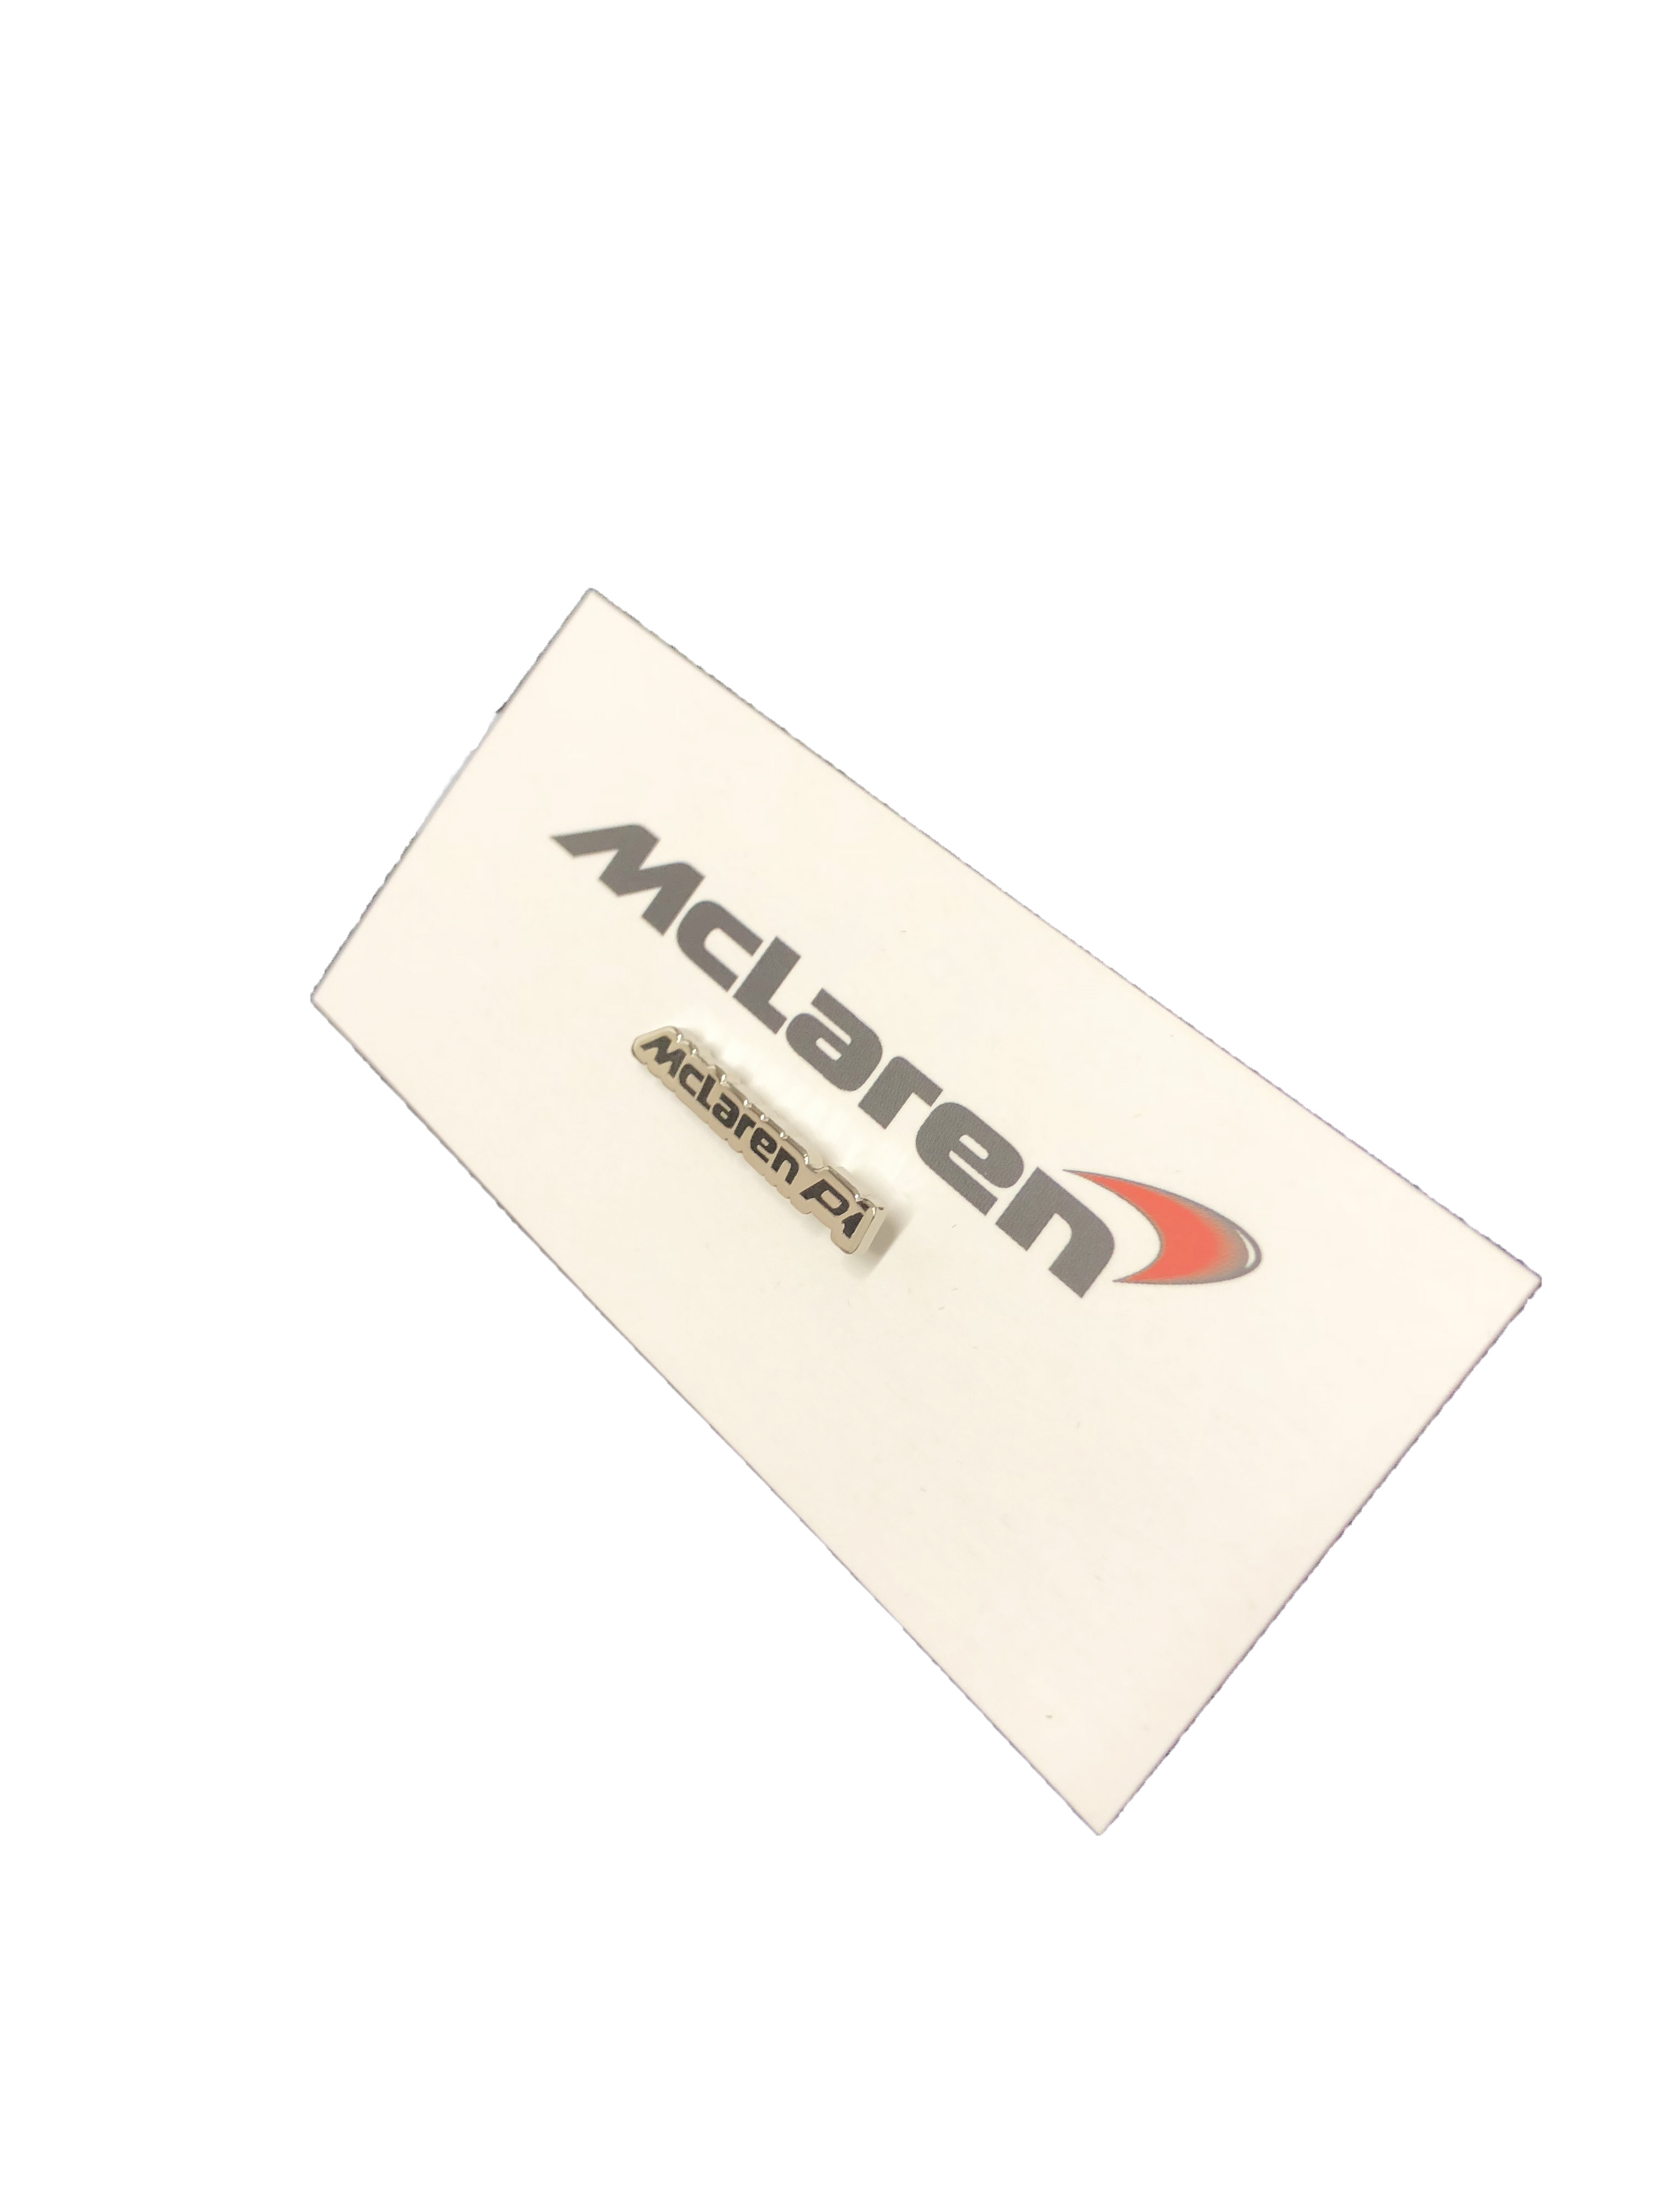 McLaren Official P1 Lapel Pin